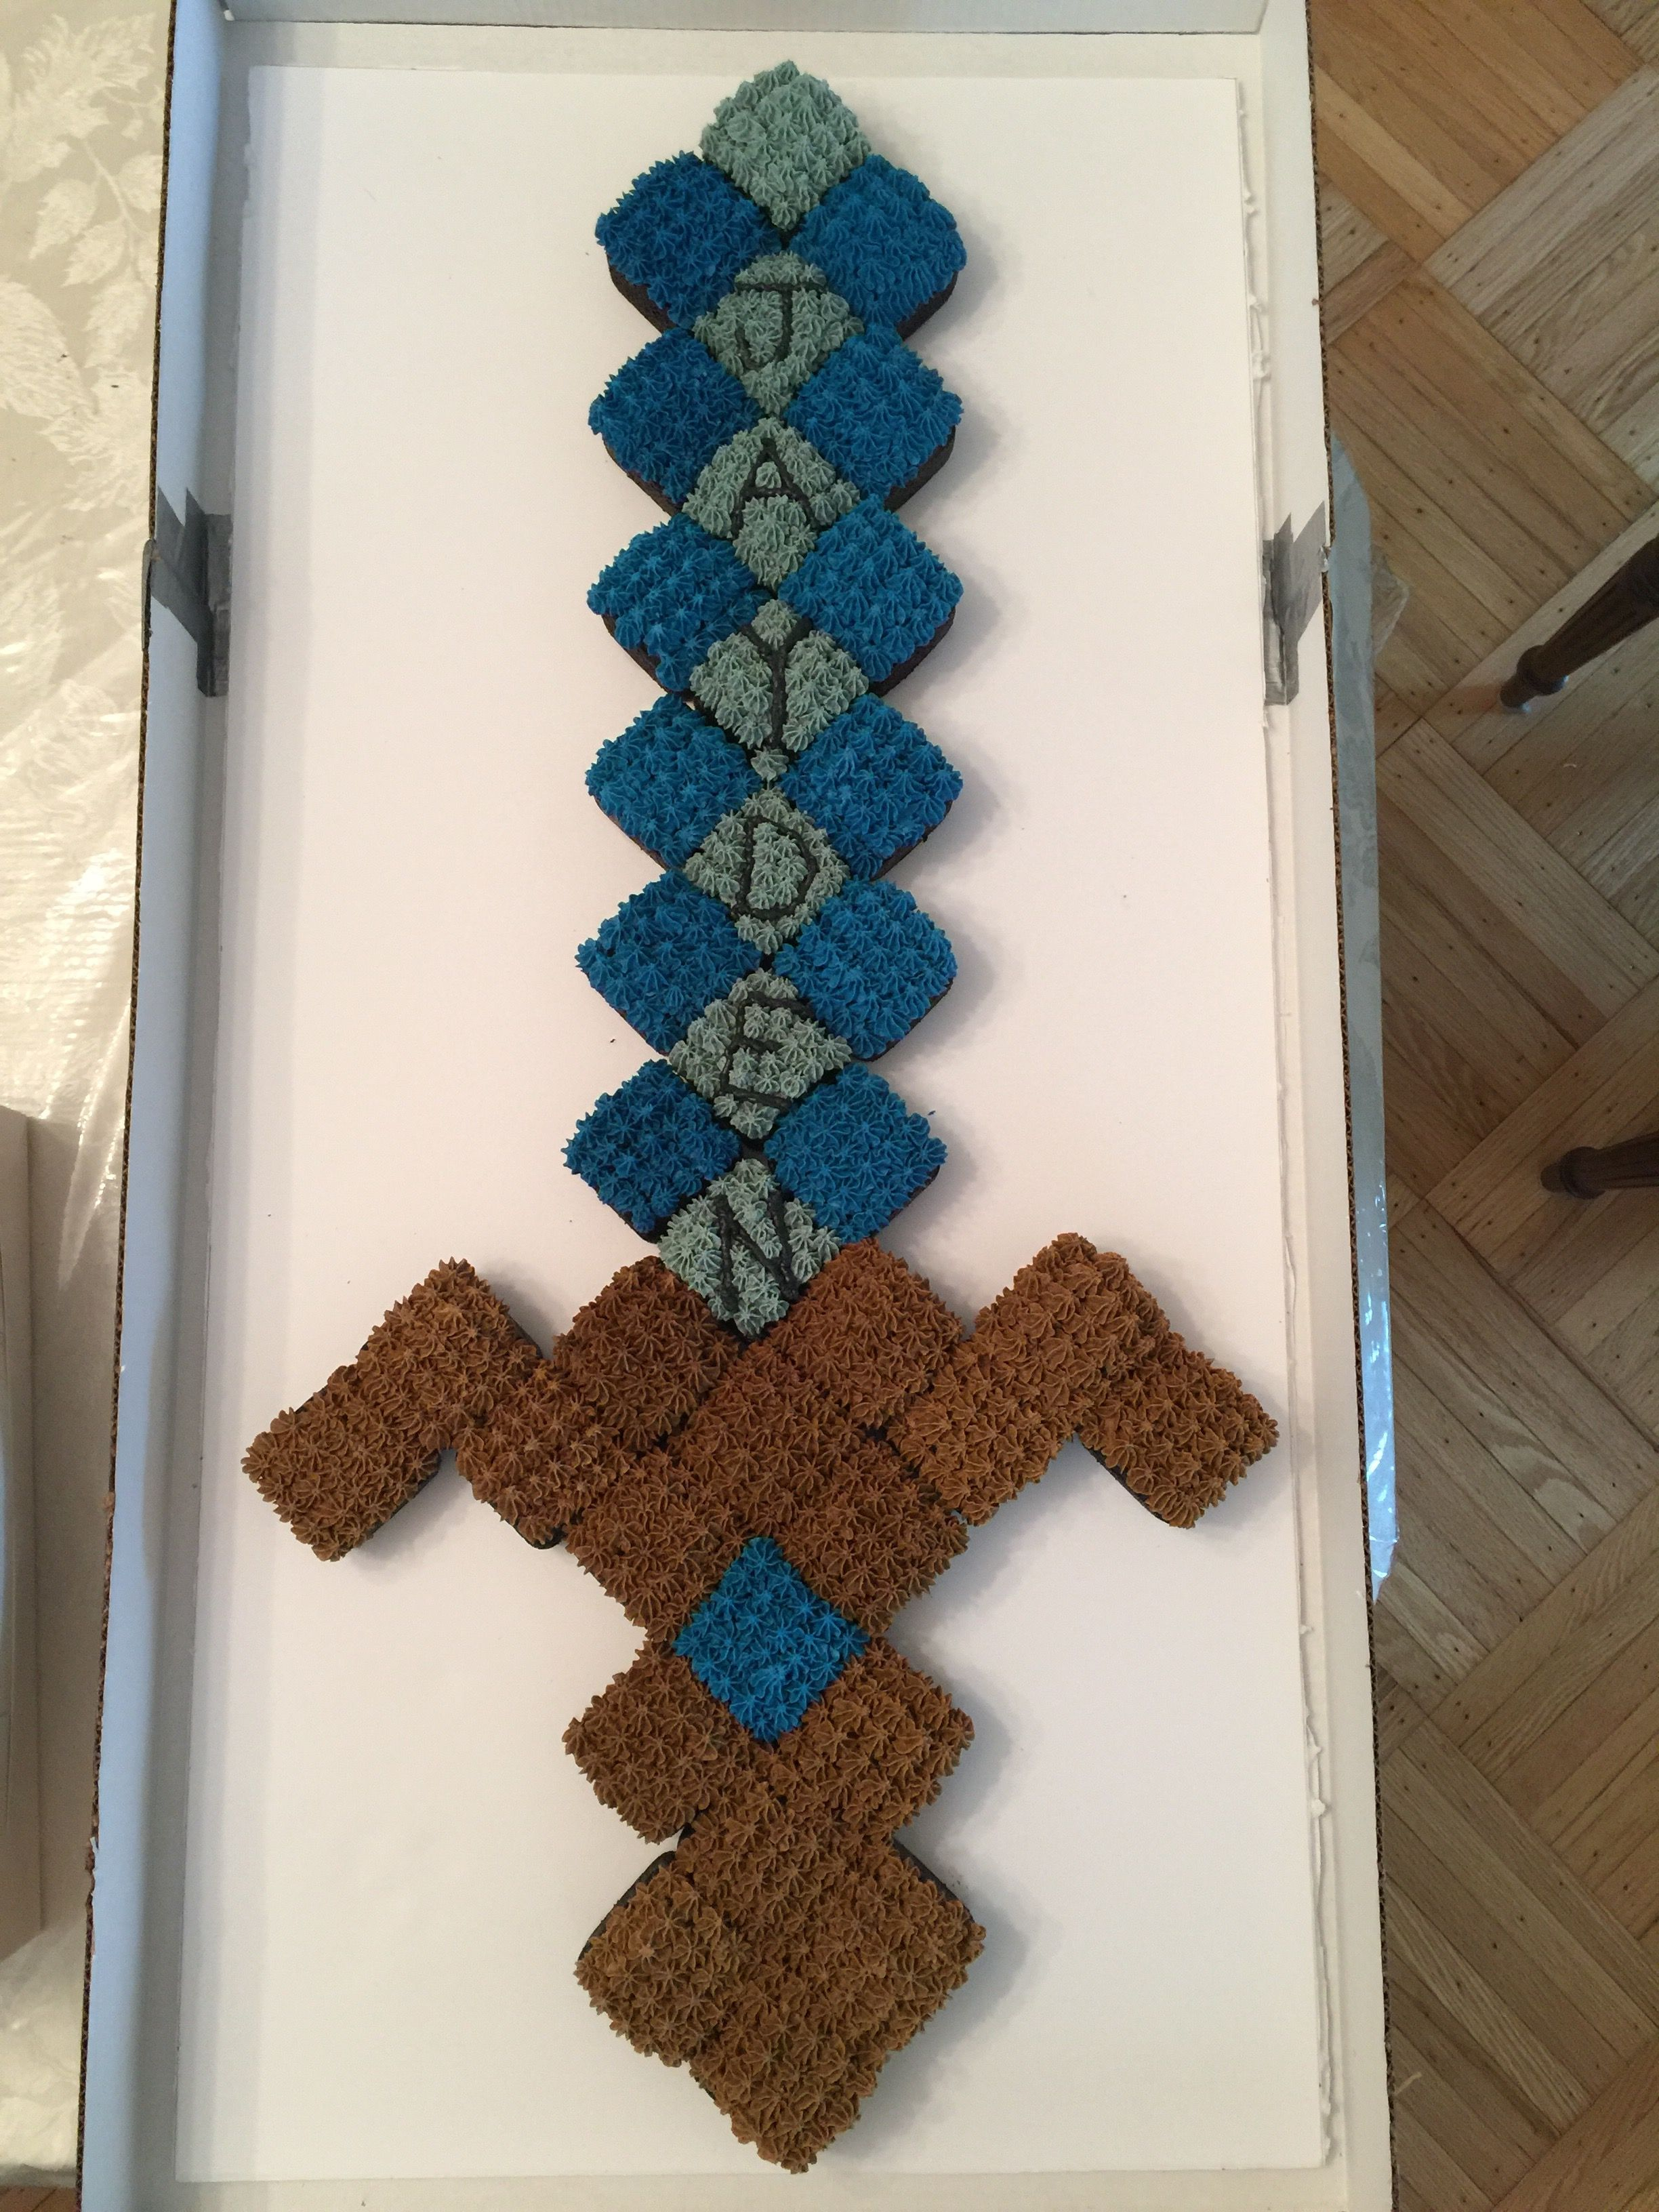 Minecraft Diamond Sword Cupcake Cake. Cookies And Cream Cupcakes With  Cookies And Cream Buttercream Frosting